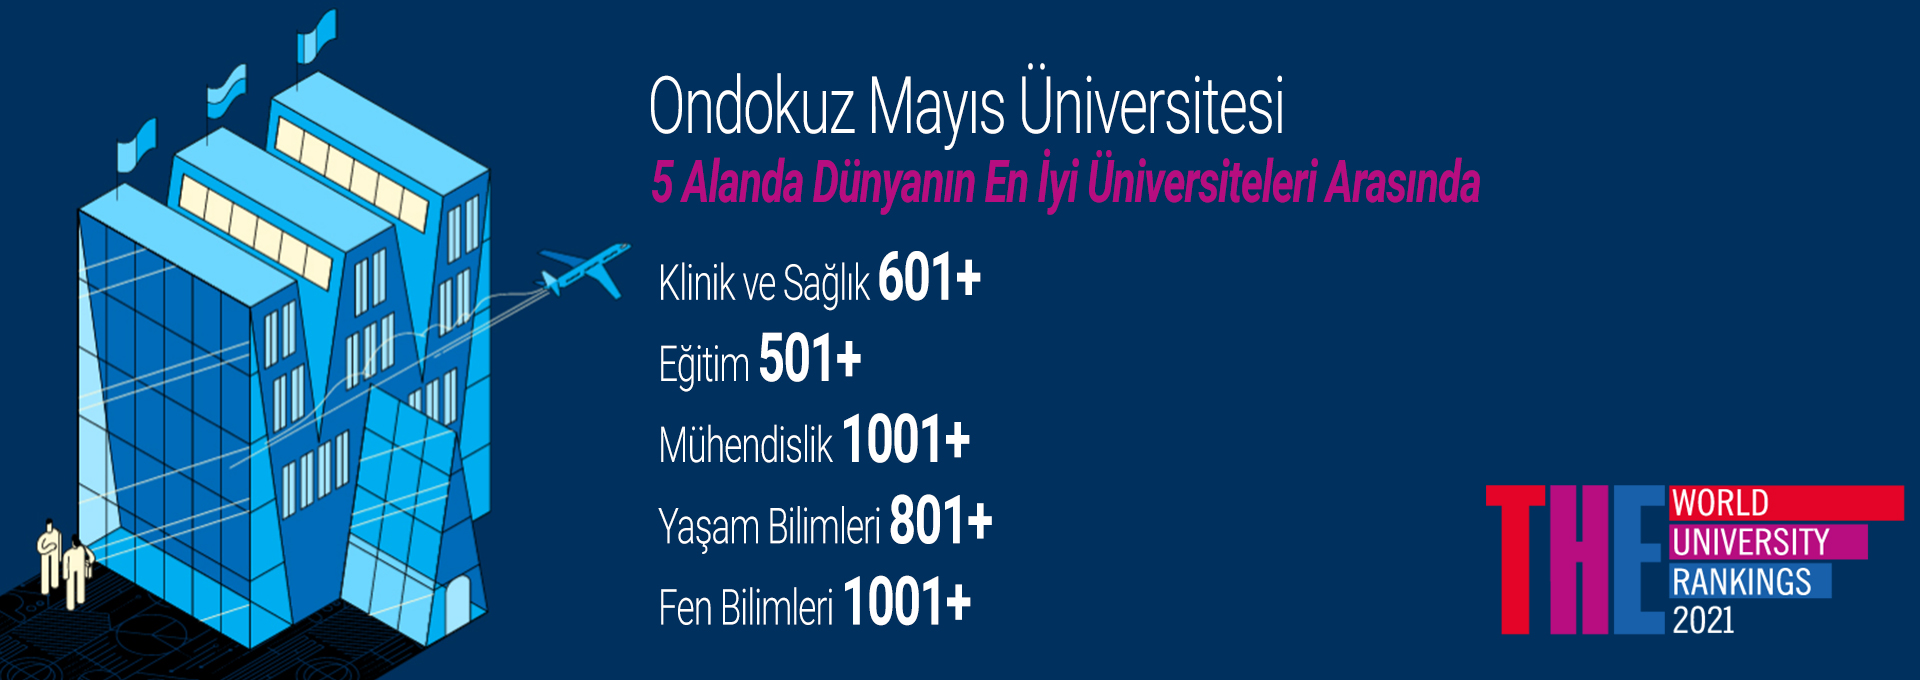 Ondokuz Mayis University is ranked in the 2021 Times Higher Education World University Rankings by Subject